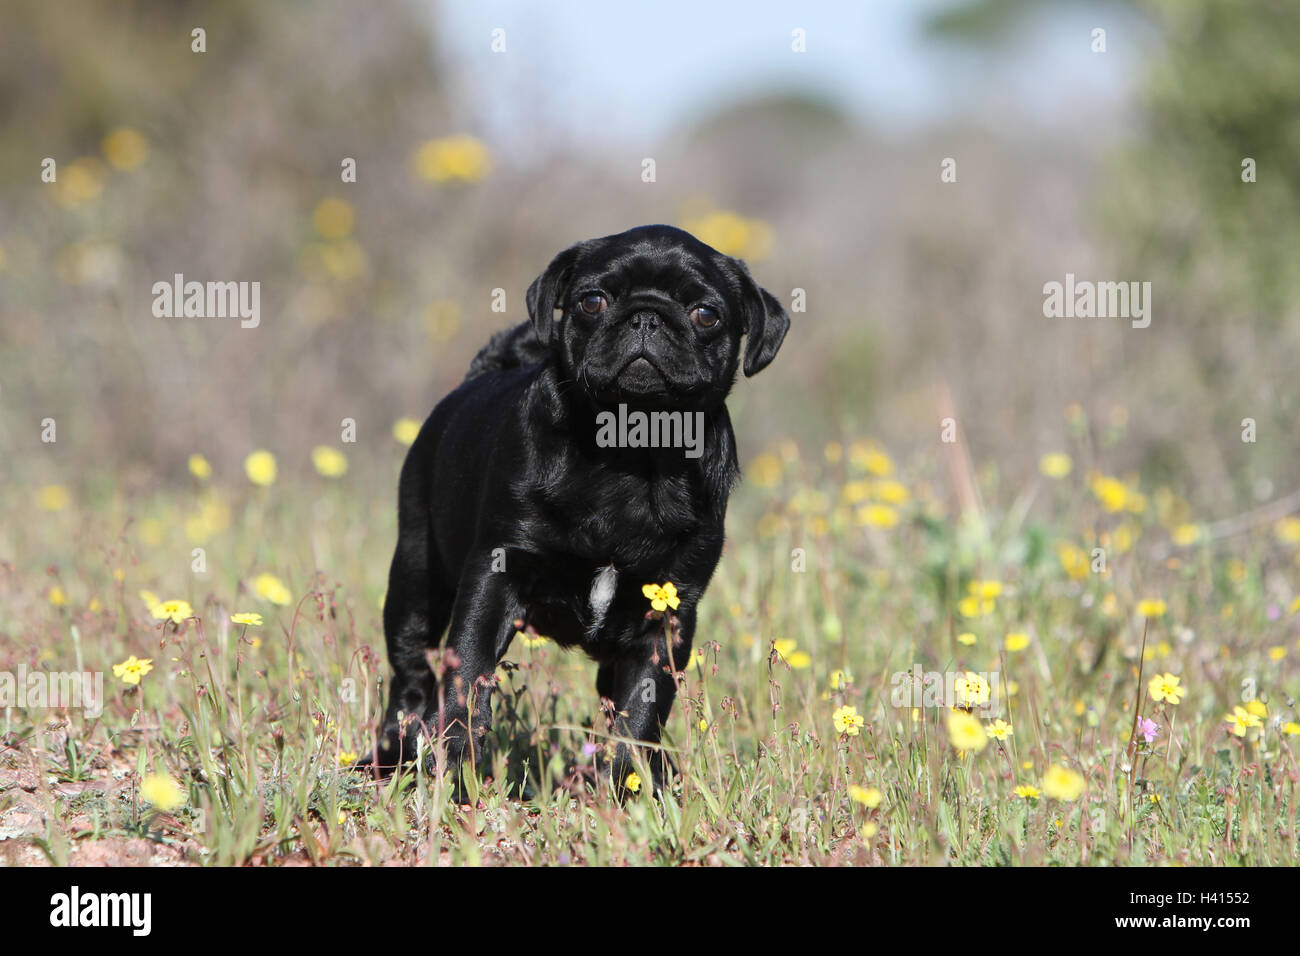 Dog Pug / Carlin / Mops puppy black standing field flower attentive natural - Stock Image